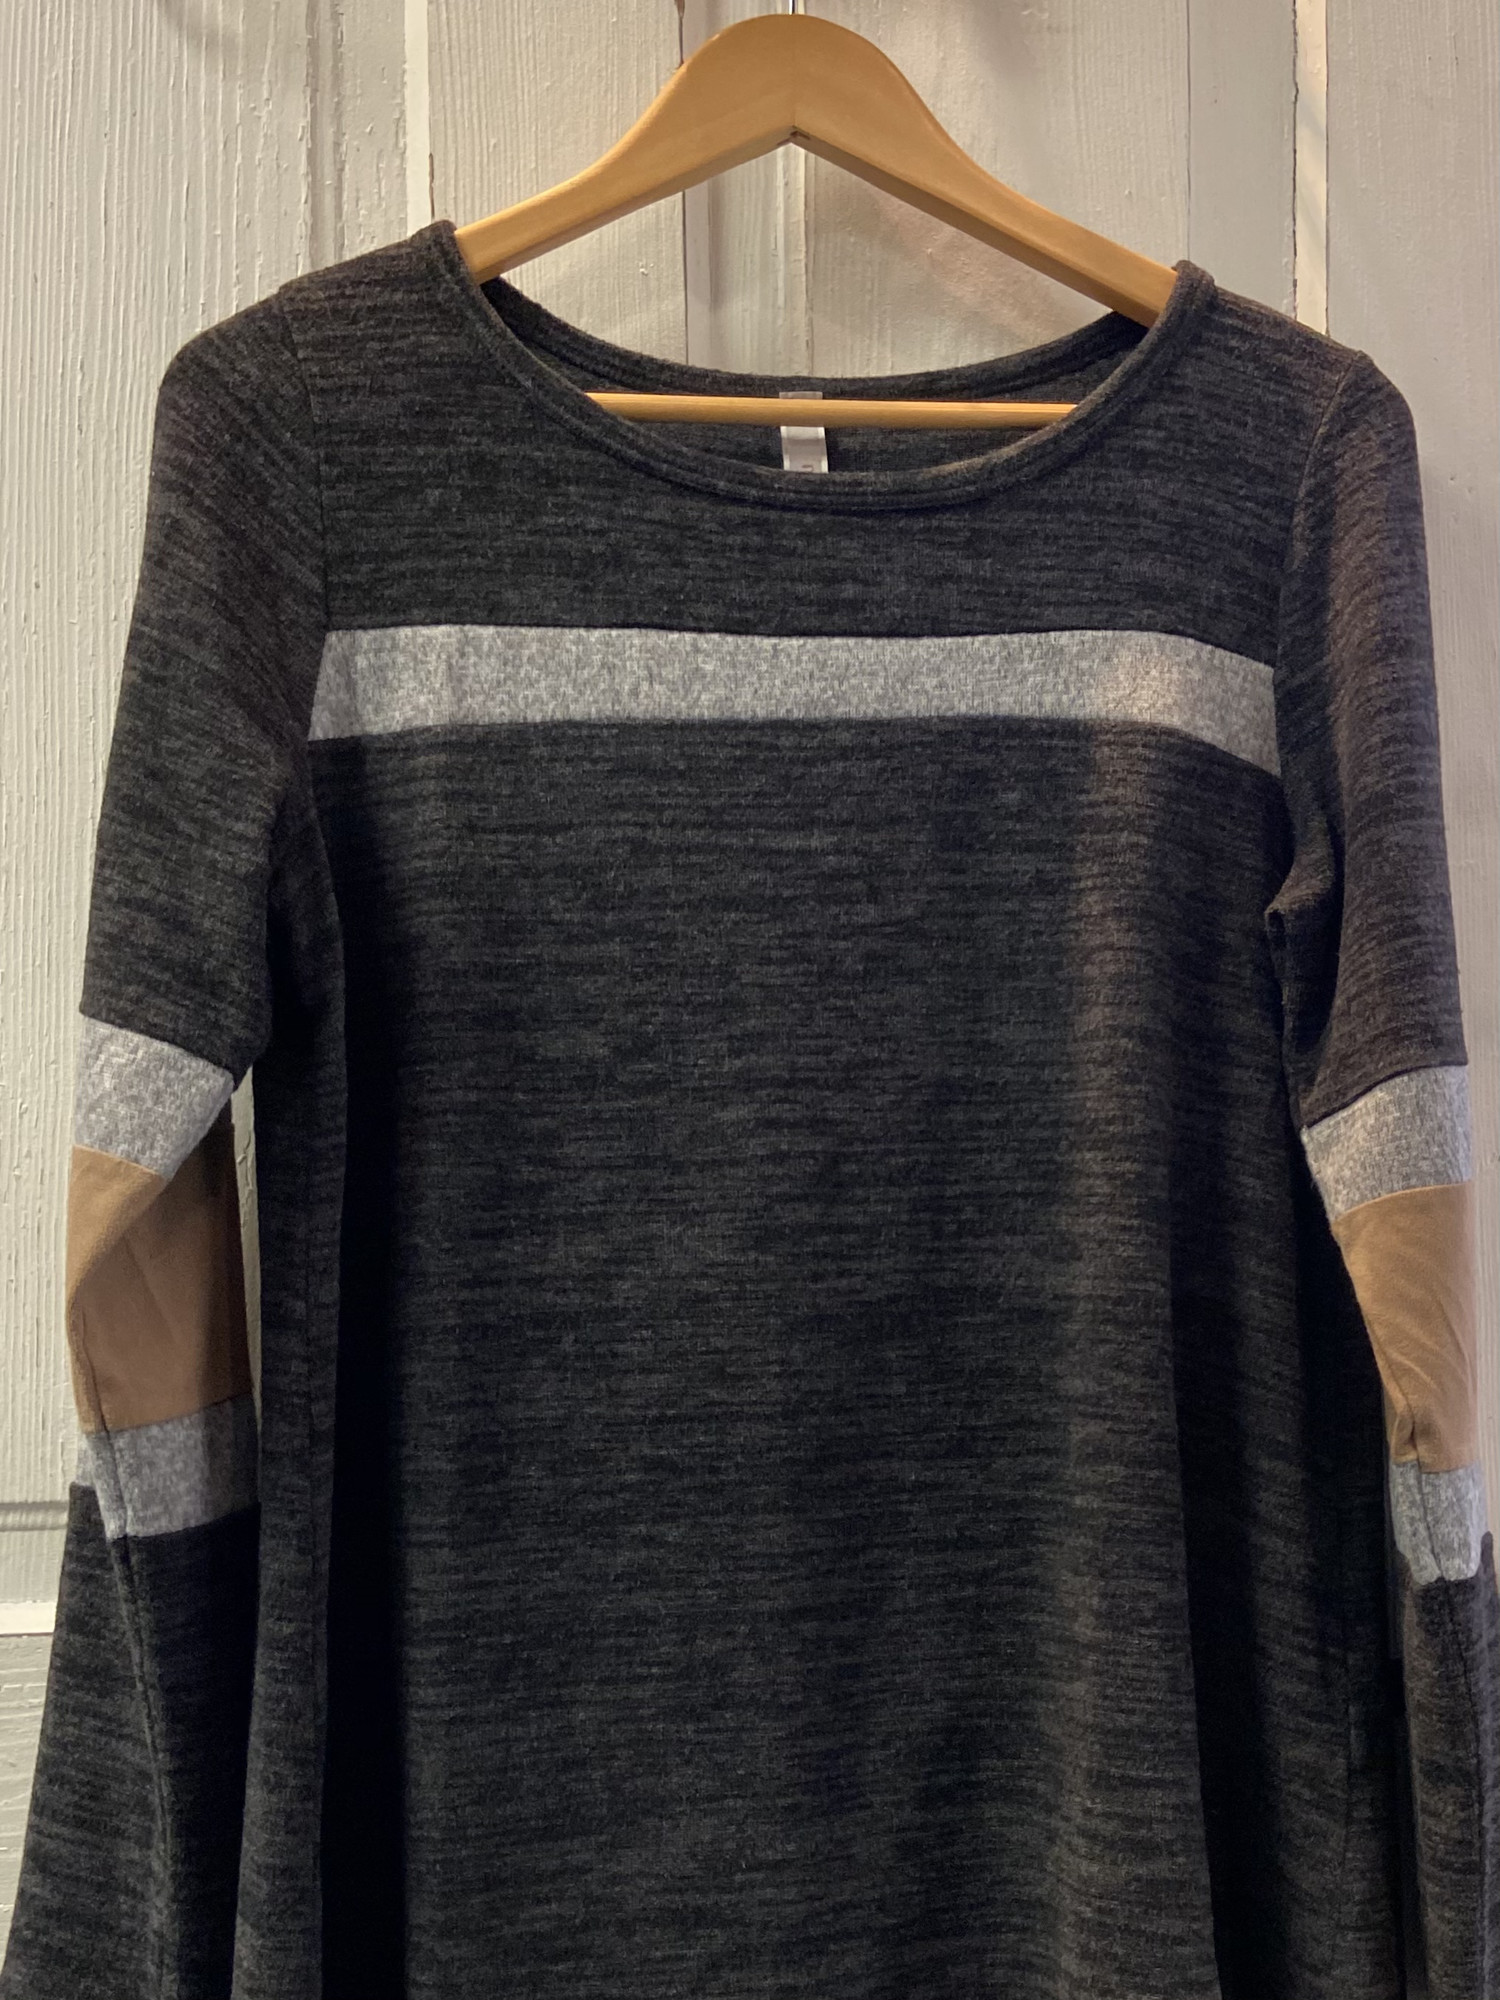 Gry/taupe Stripe Top<br /> Grey<br /> Size: Large